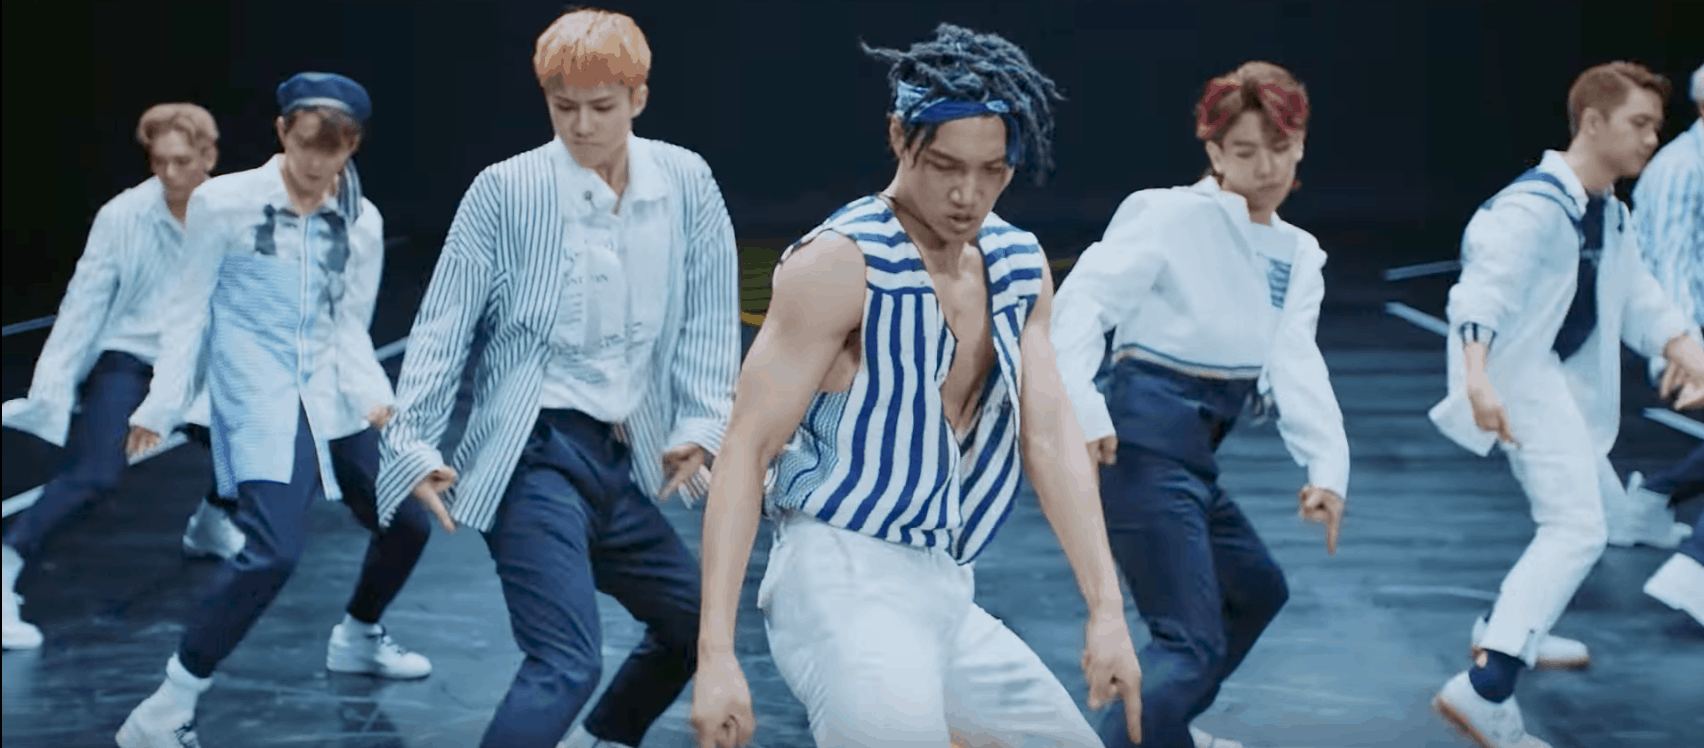 EXO Ko Ko Bop Video - the boys doing a dance routine wearing striped shirts and navy pants